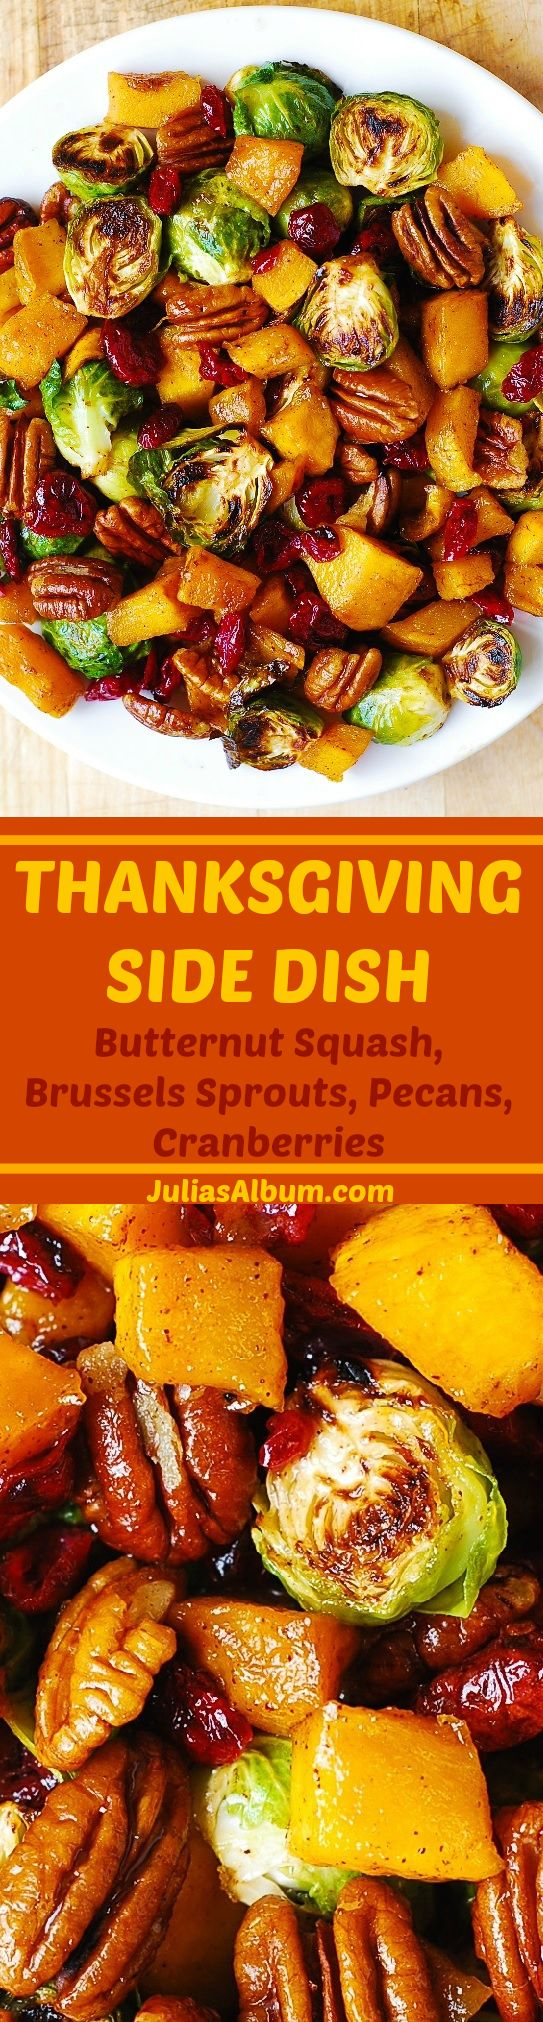 rhode island bangle charm bracelets Thanksgiving Side Dish  Roasted Brussels Sprouts  Butternut Squash glazed with Cinnamon  amp  Maple Syrup  Pecans  amp  Cranberries  YUM  Healthy  vegetarian  gluten free Holiday Recipe